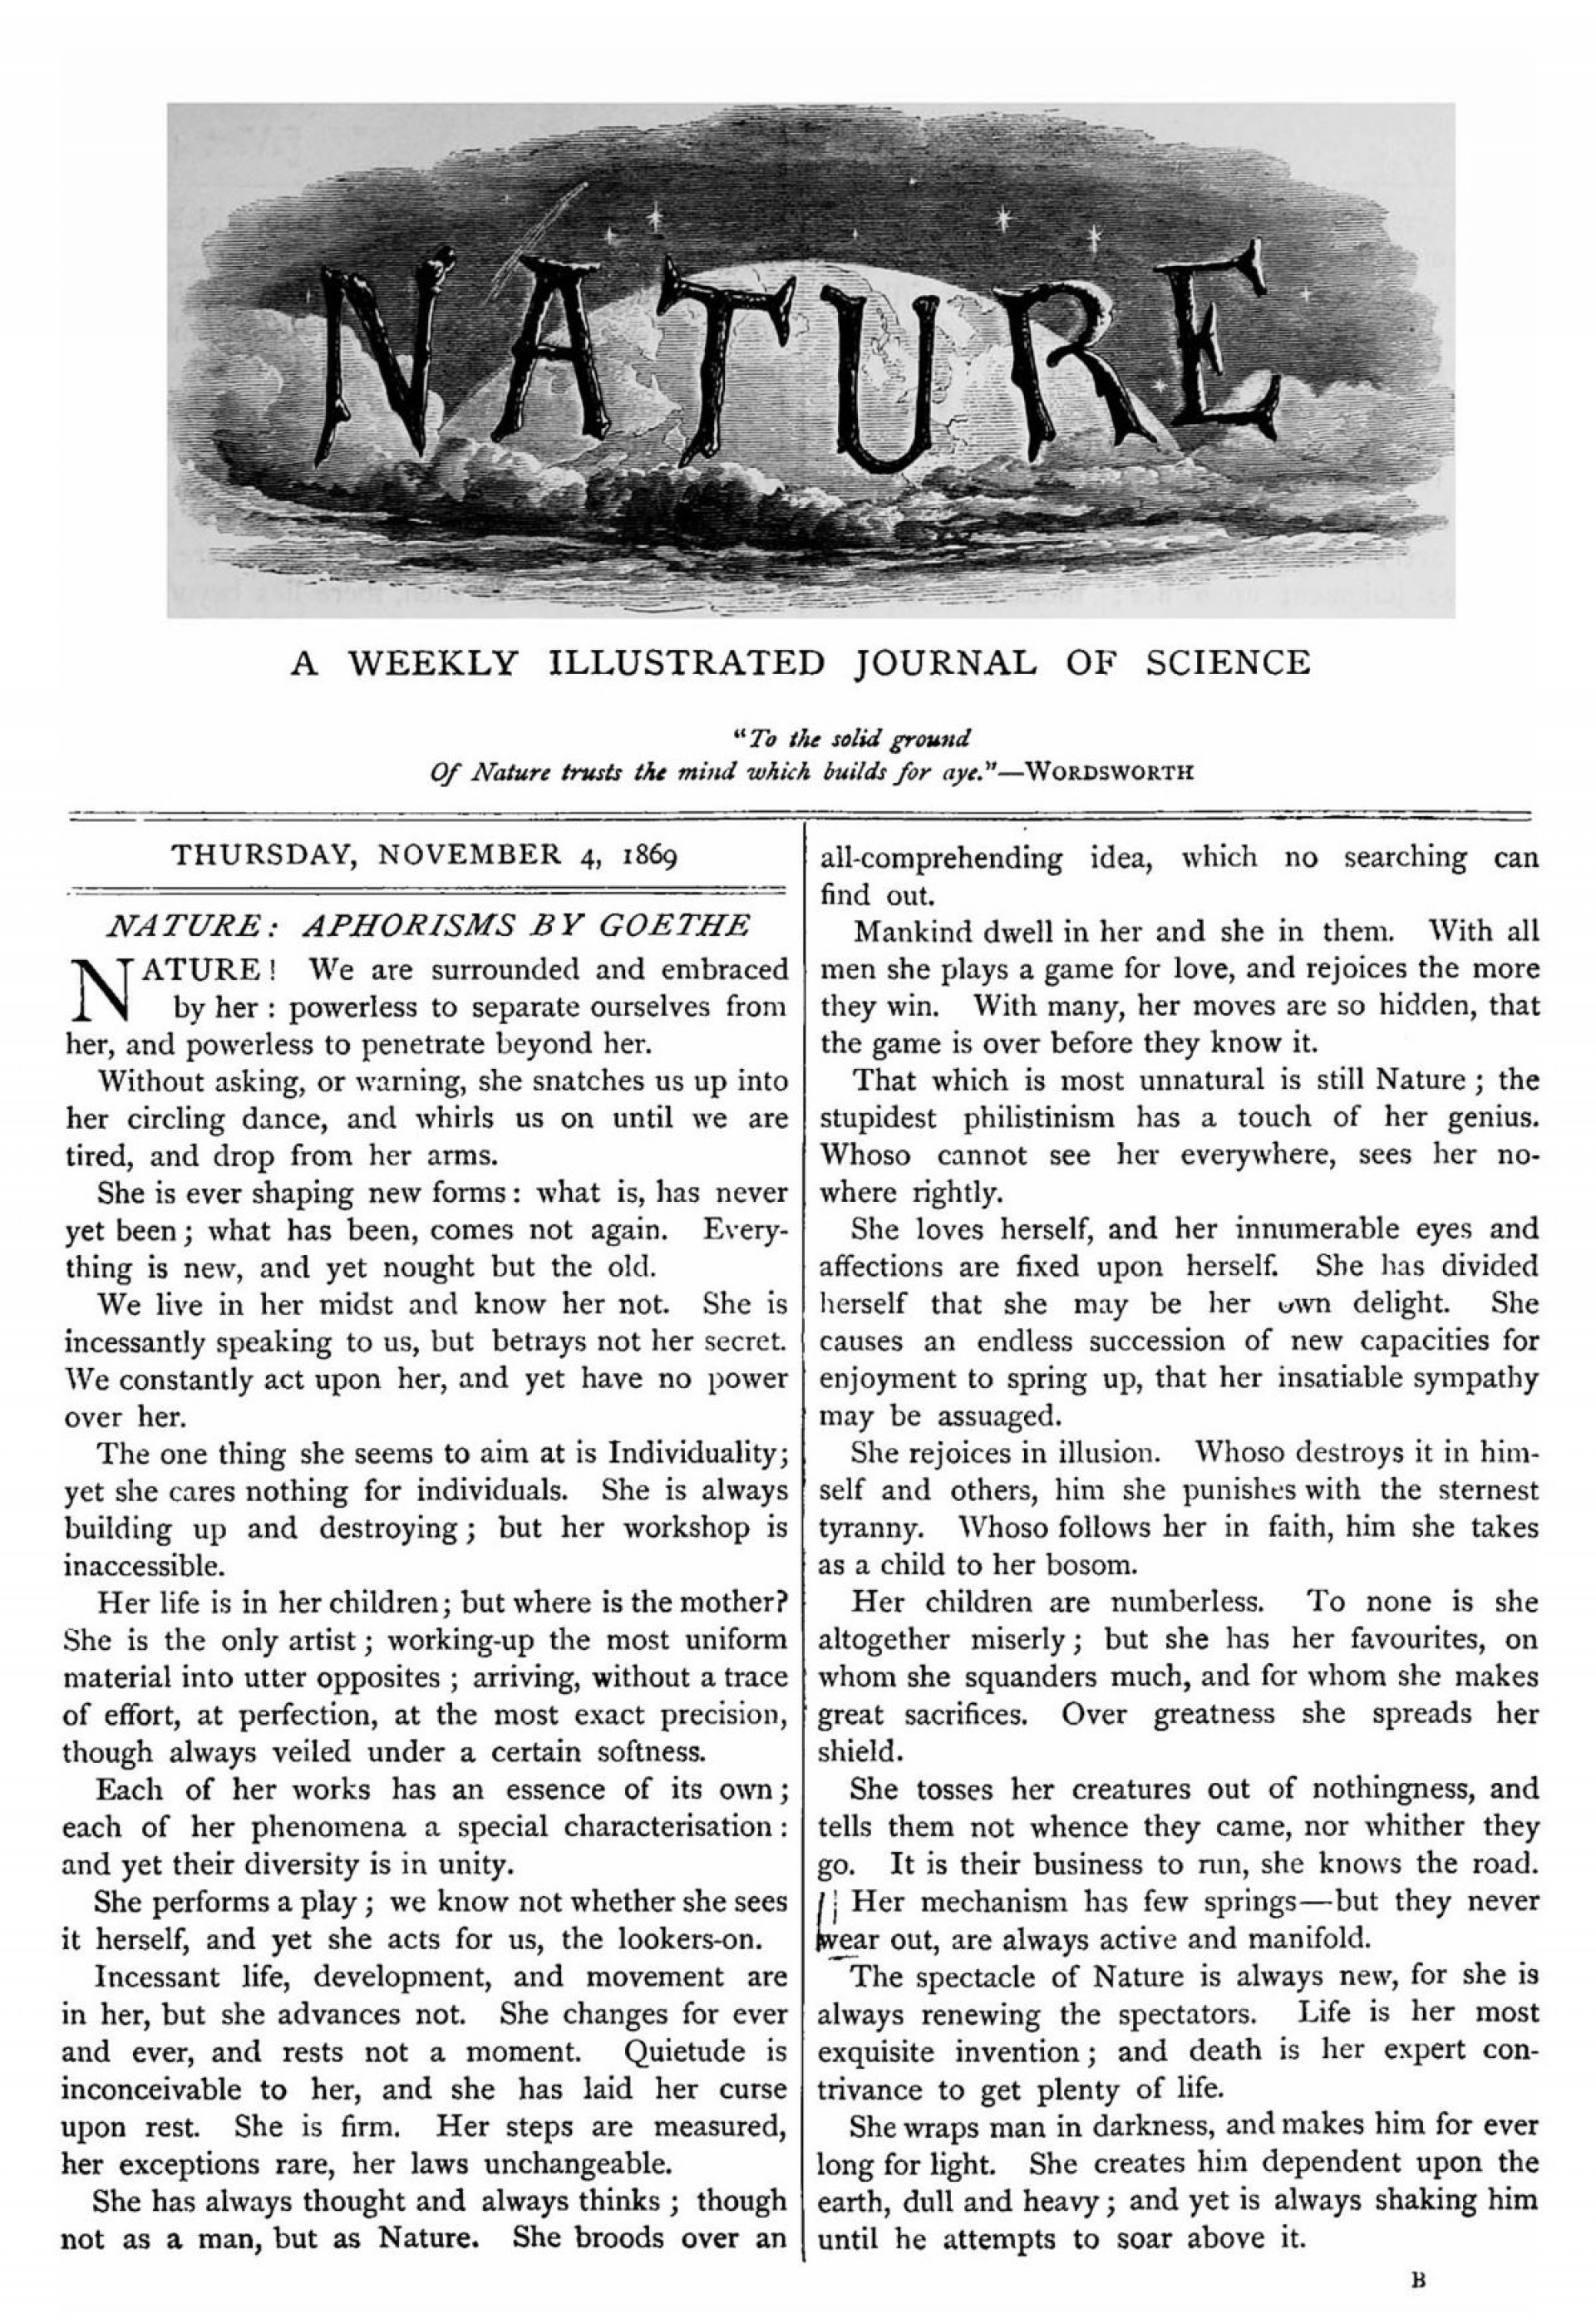 005 Best Journals To Publish Research Papers In Computer Science Paper 1200px Nature Cover2c November 42c 1869 Astounding 1920